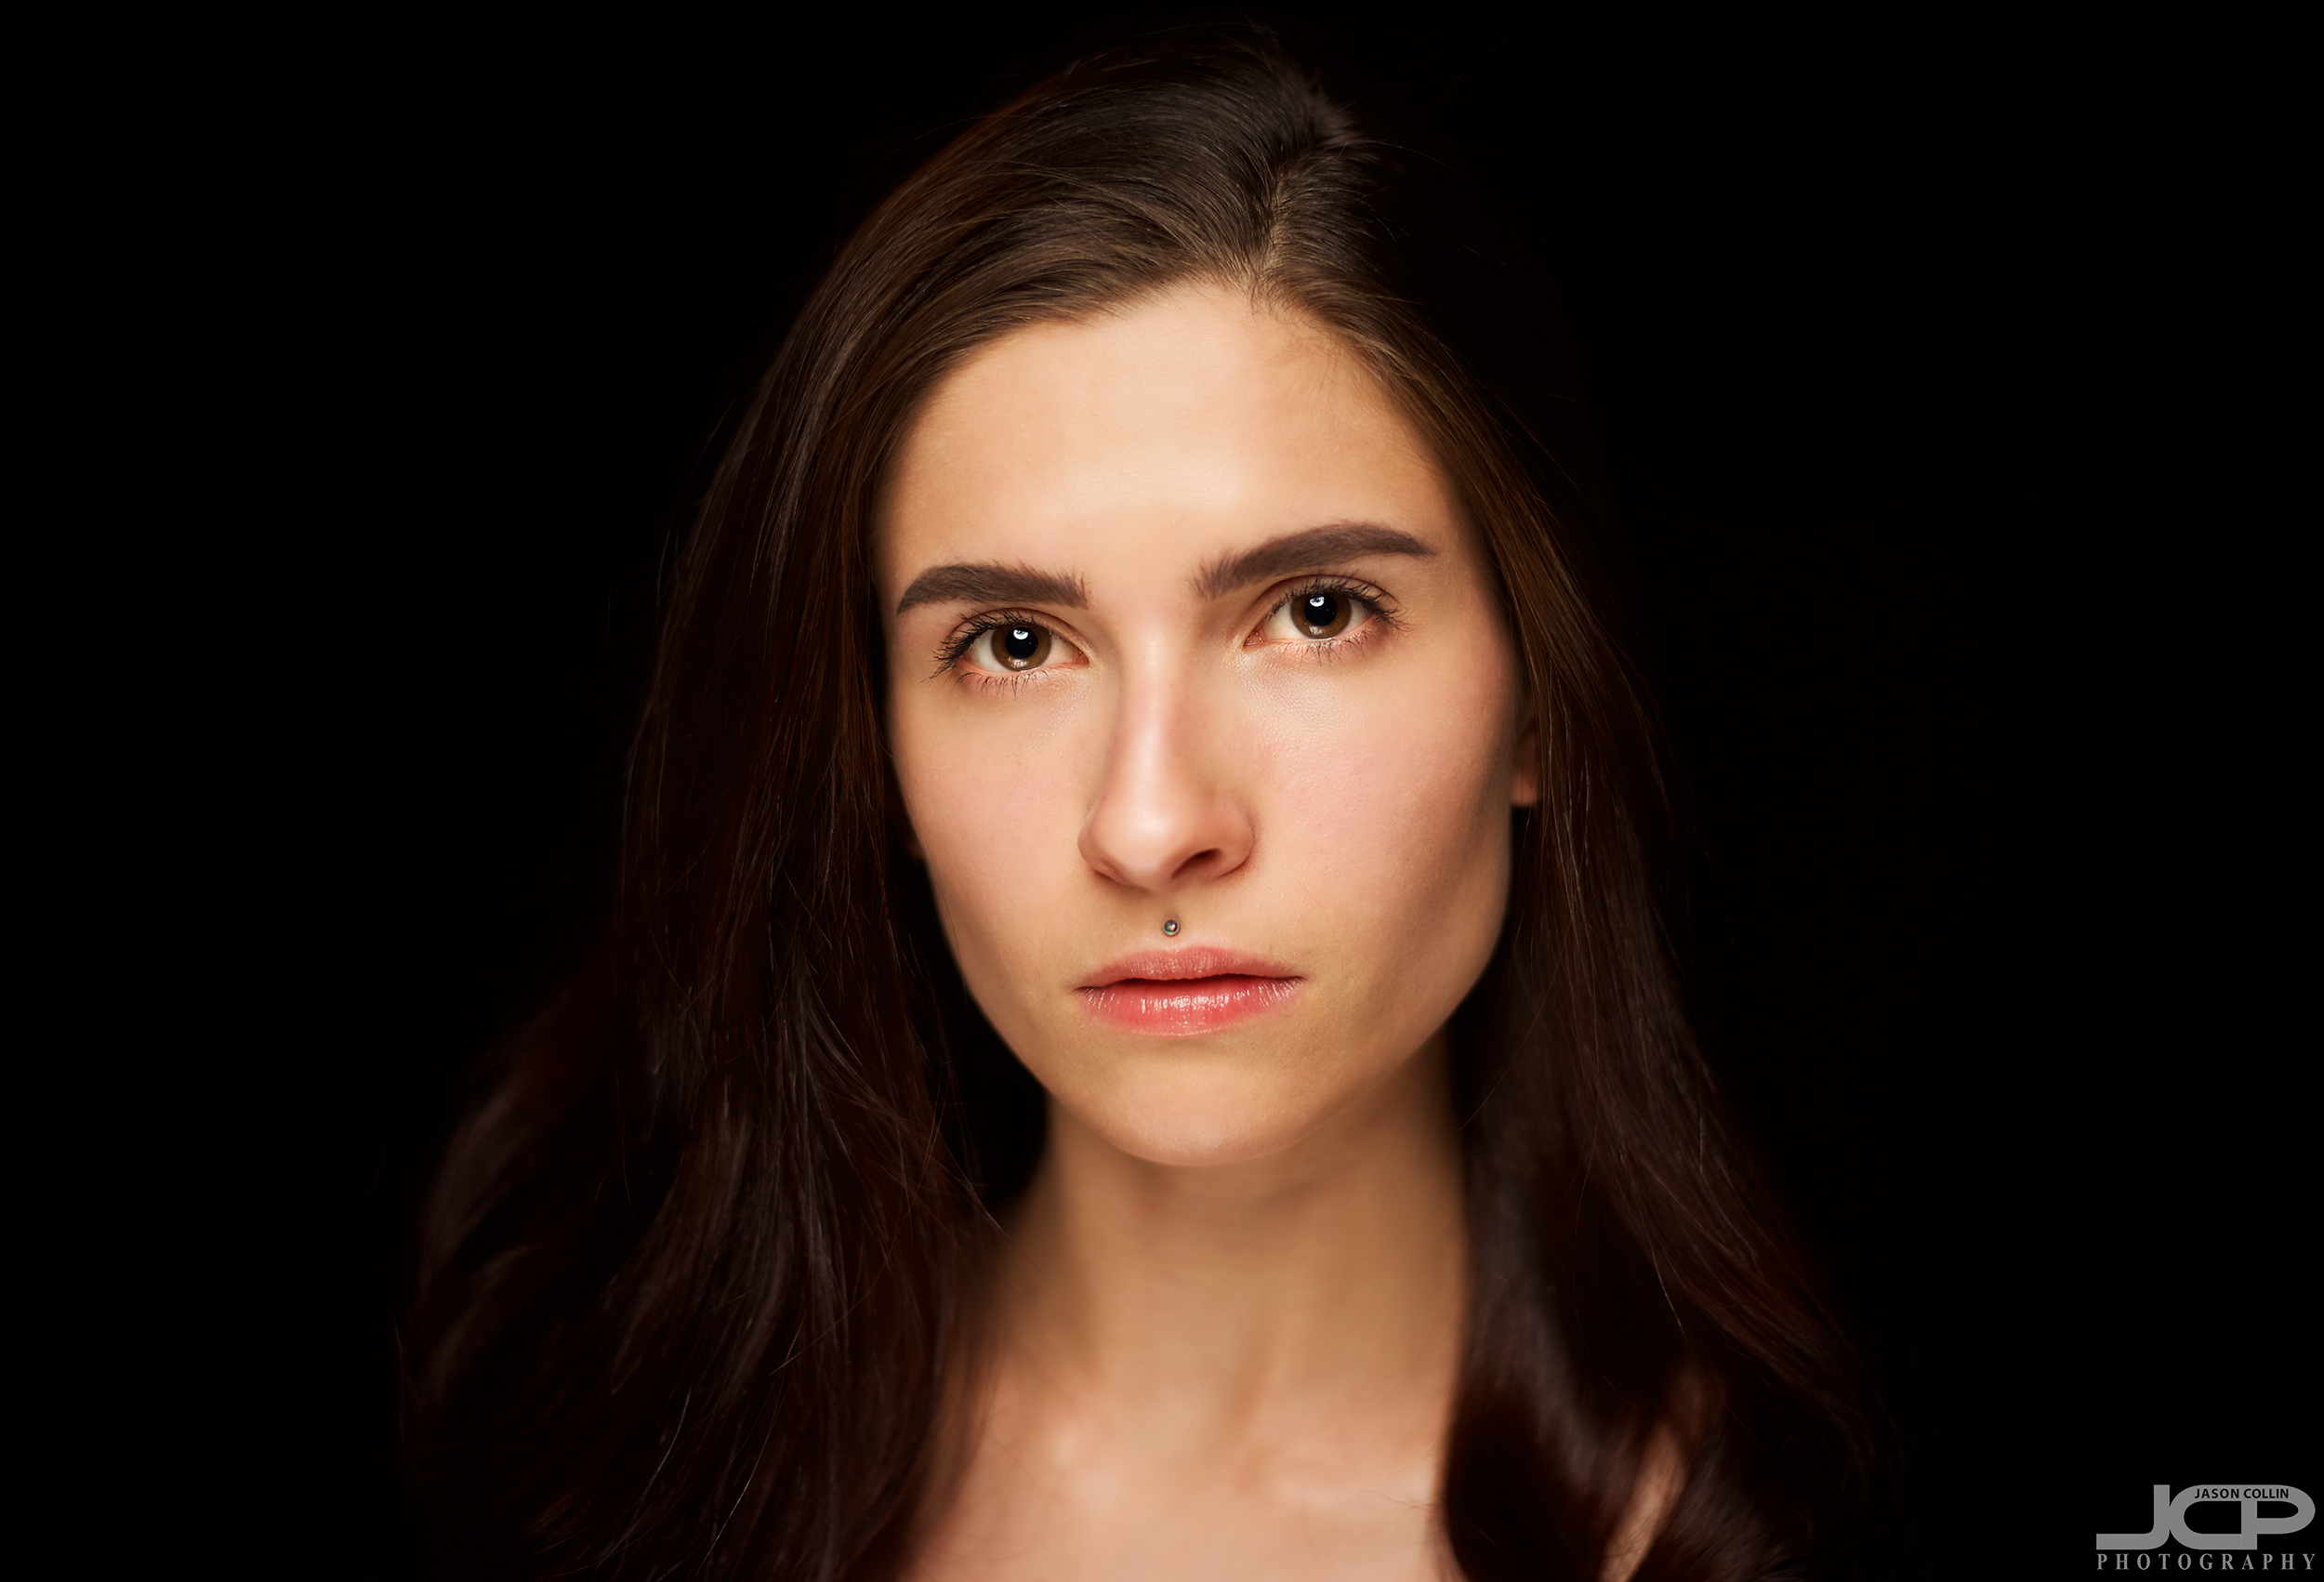 High end actor headshots are available in Albuquerque New Mexico